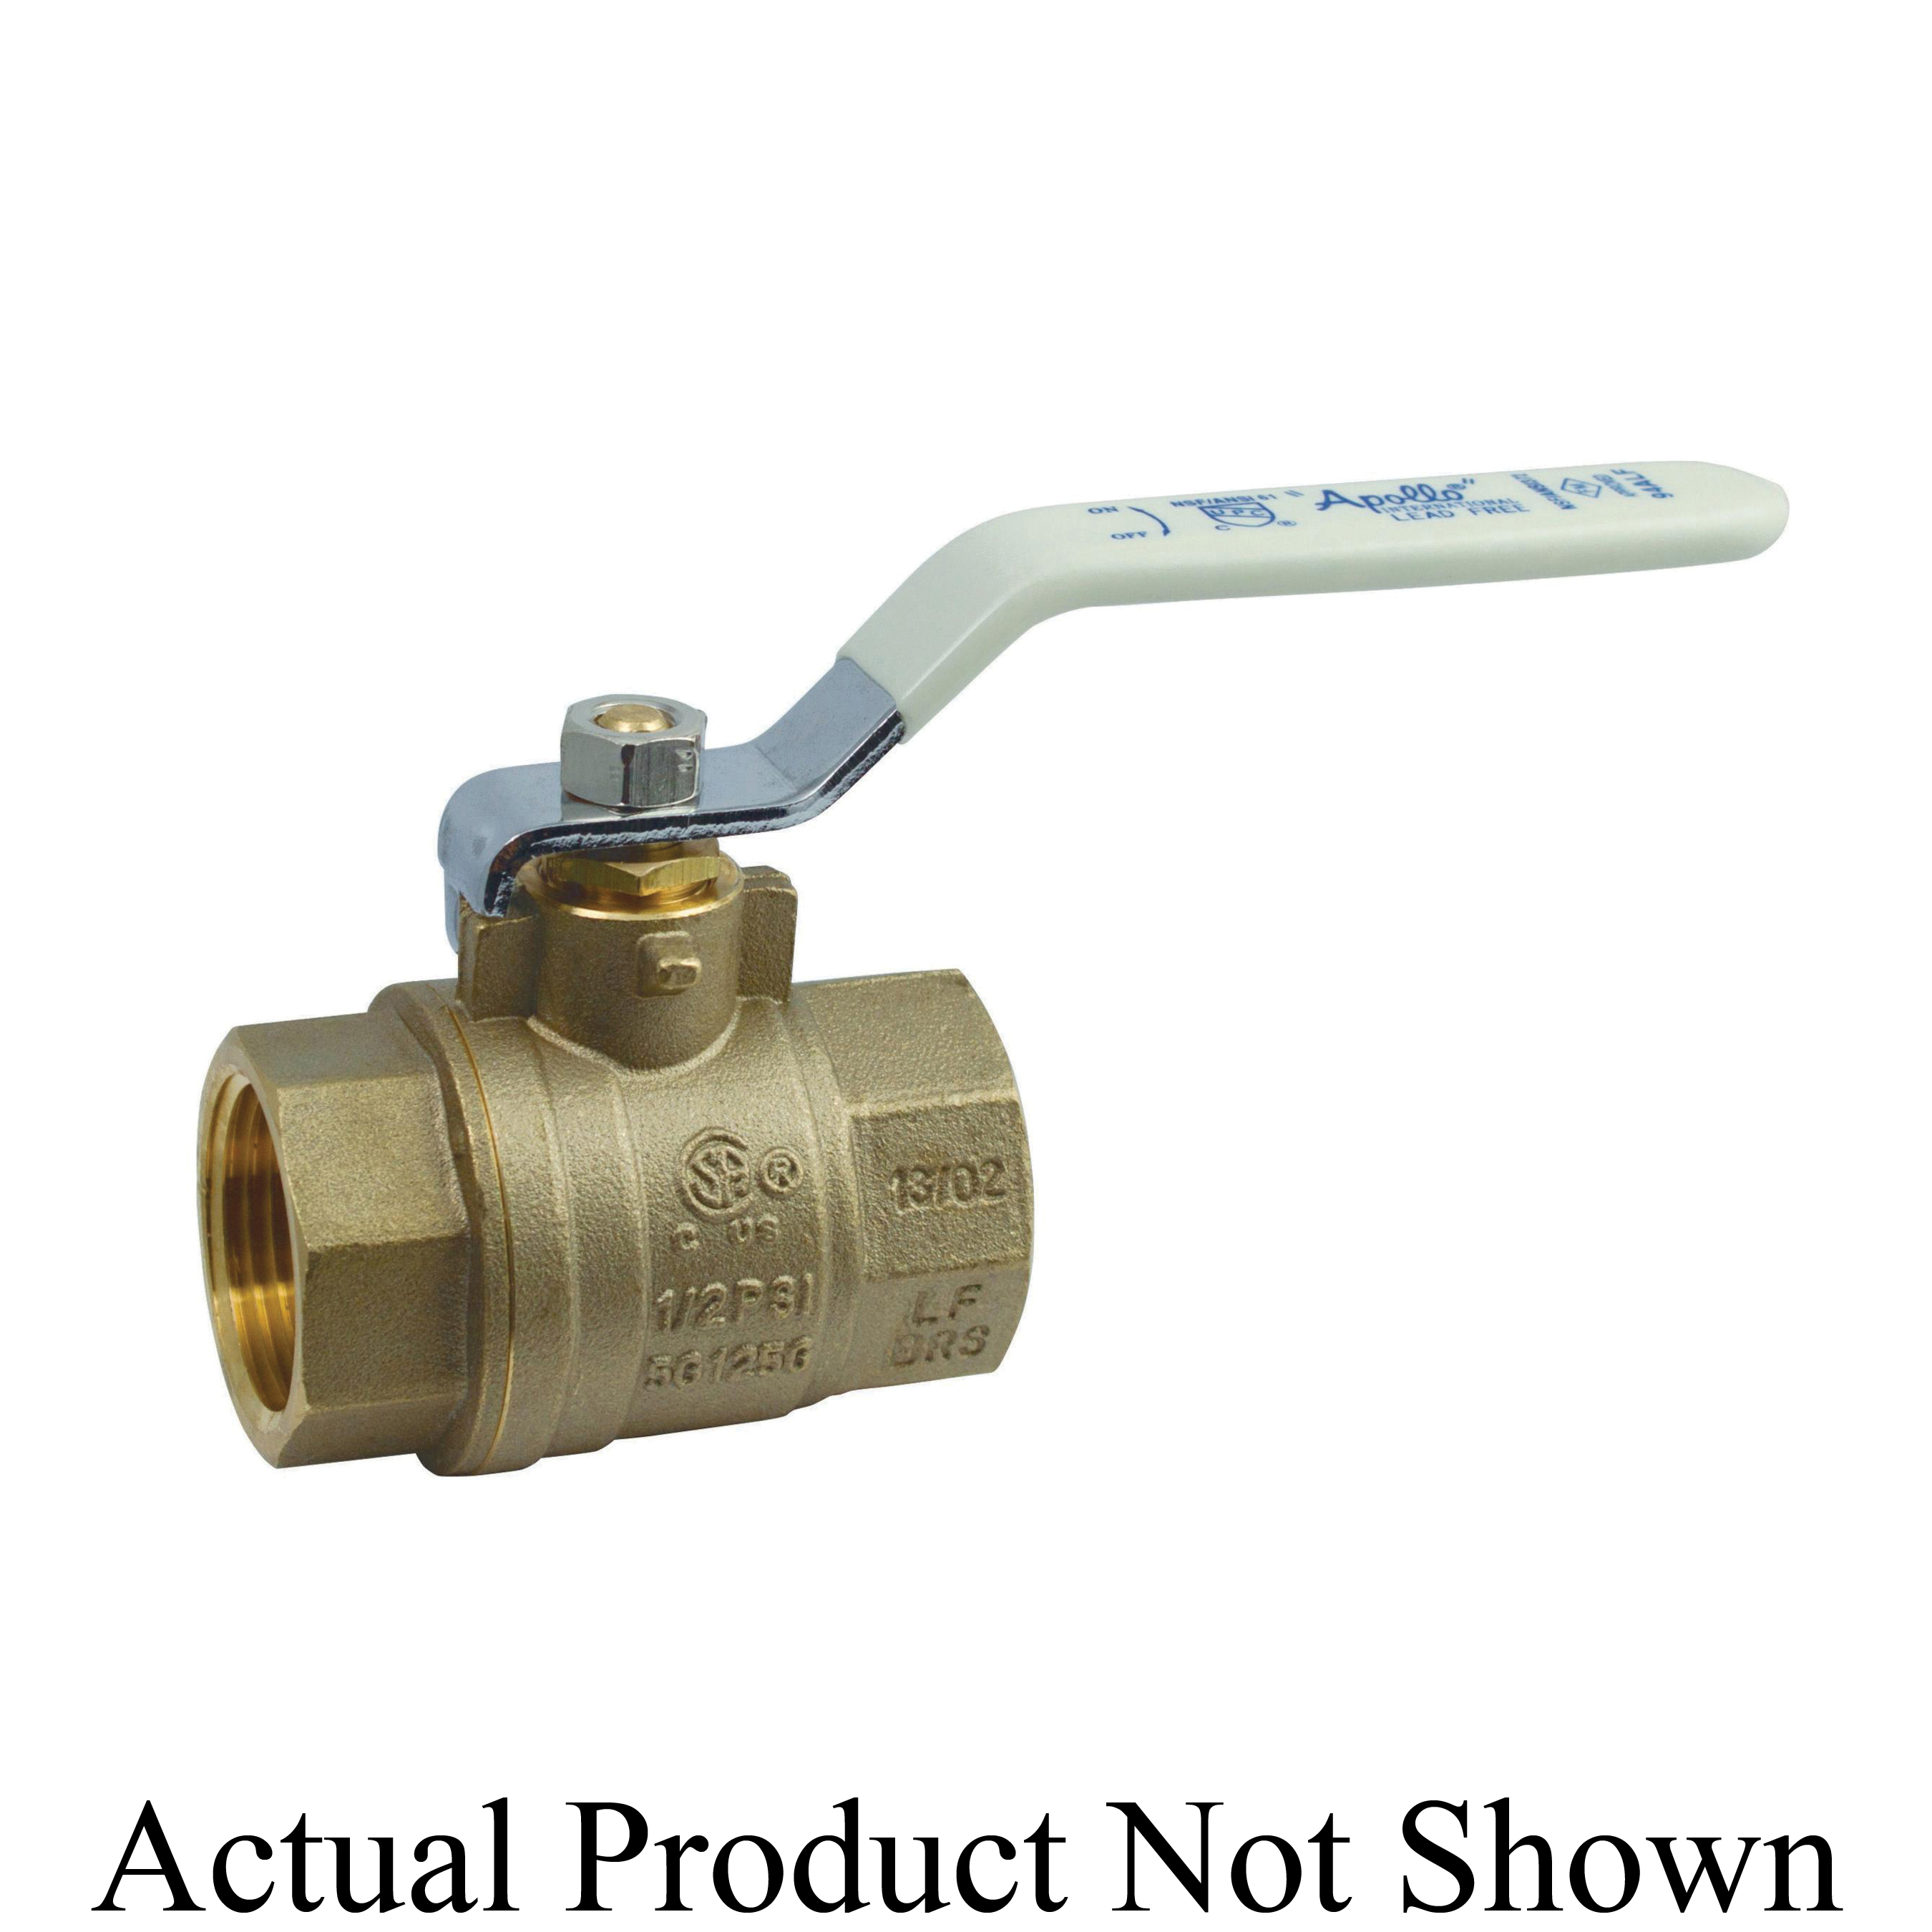 Apollo™ Apollo International™ 94ALF-204-01A 94ALF-A 2-Piece Ball Valve, 3/4 in Nominal, Solder End Style, Brass Body, Full Port, PTFE Softgoods